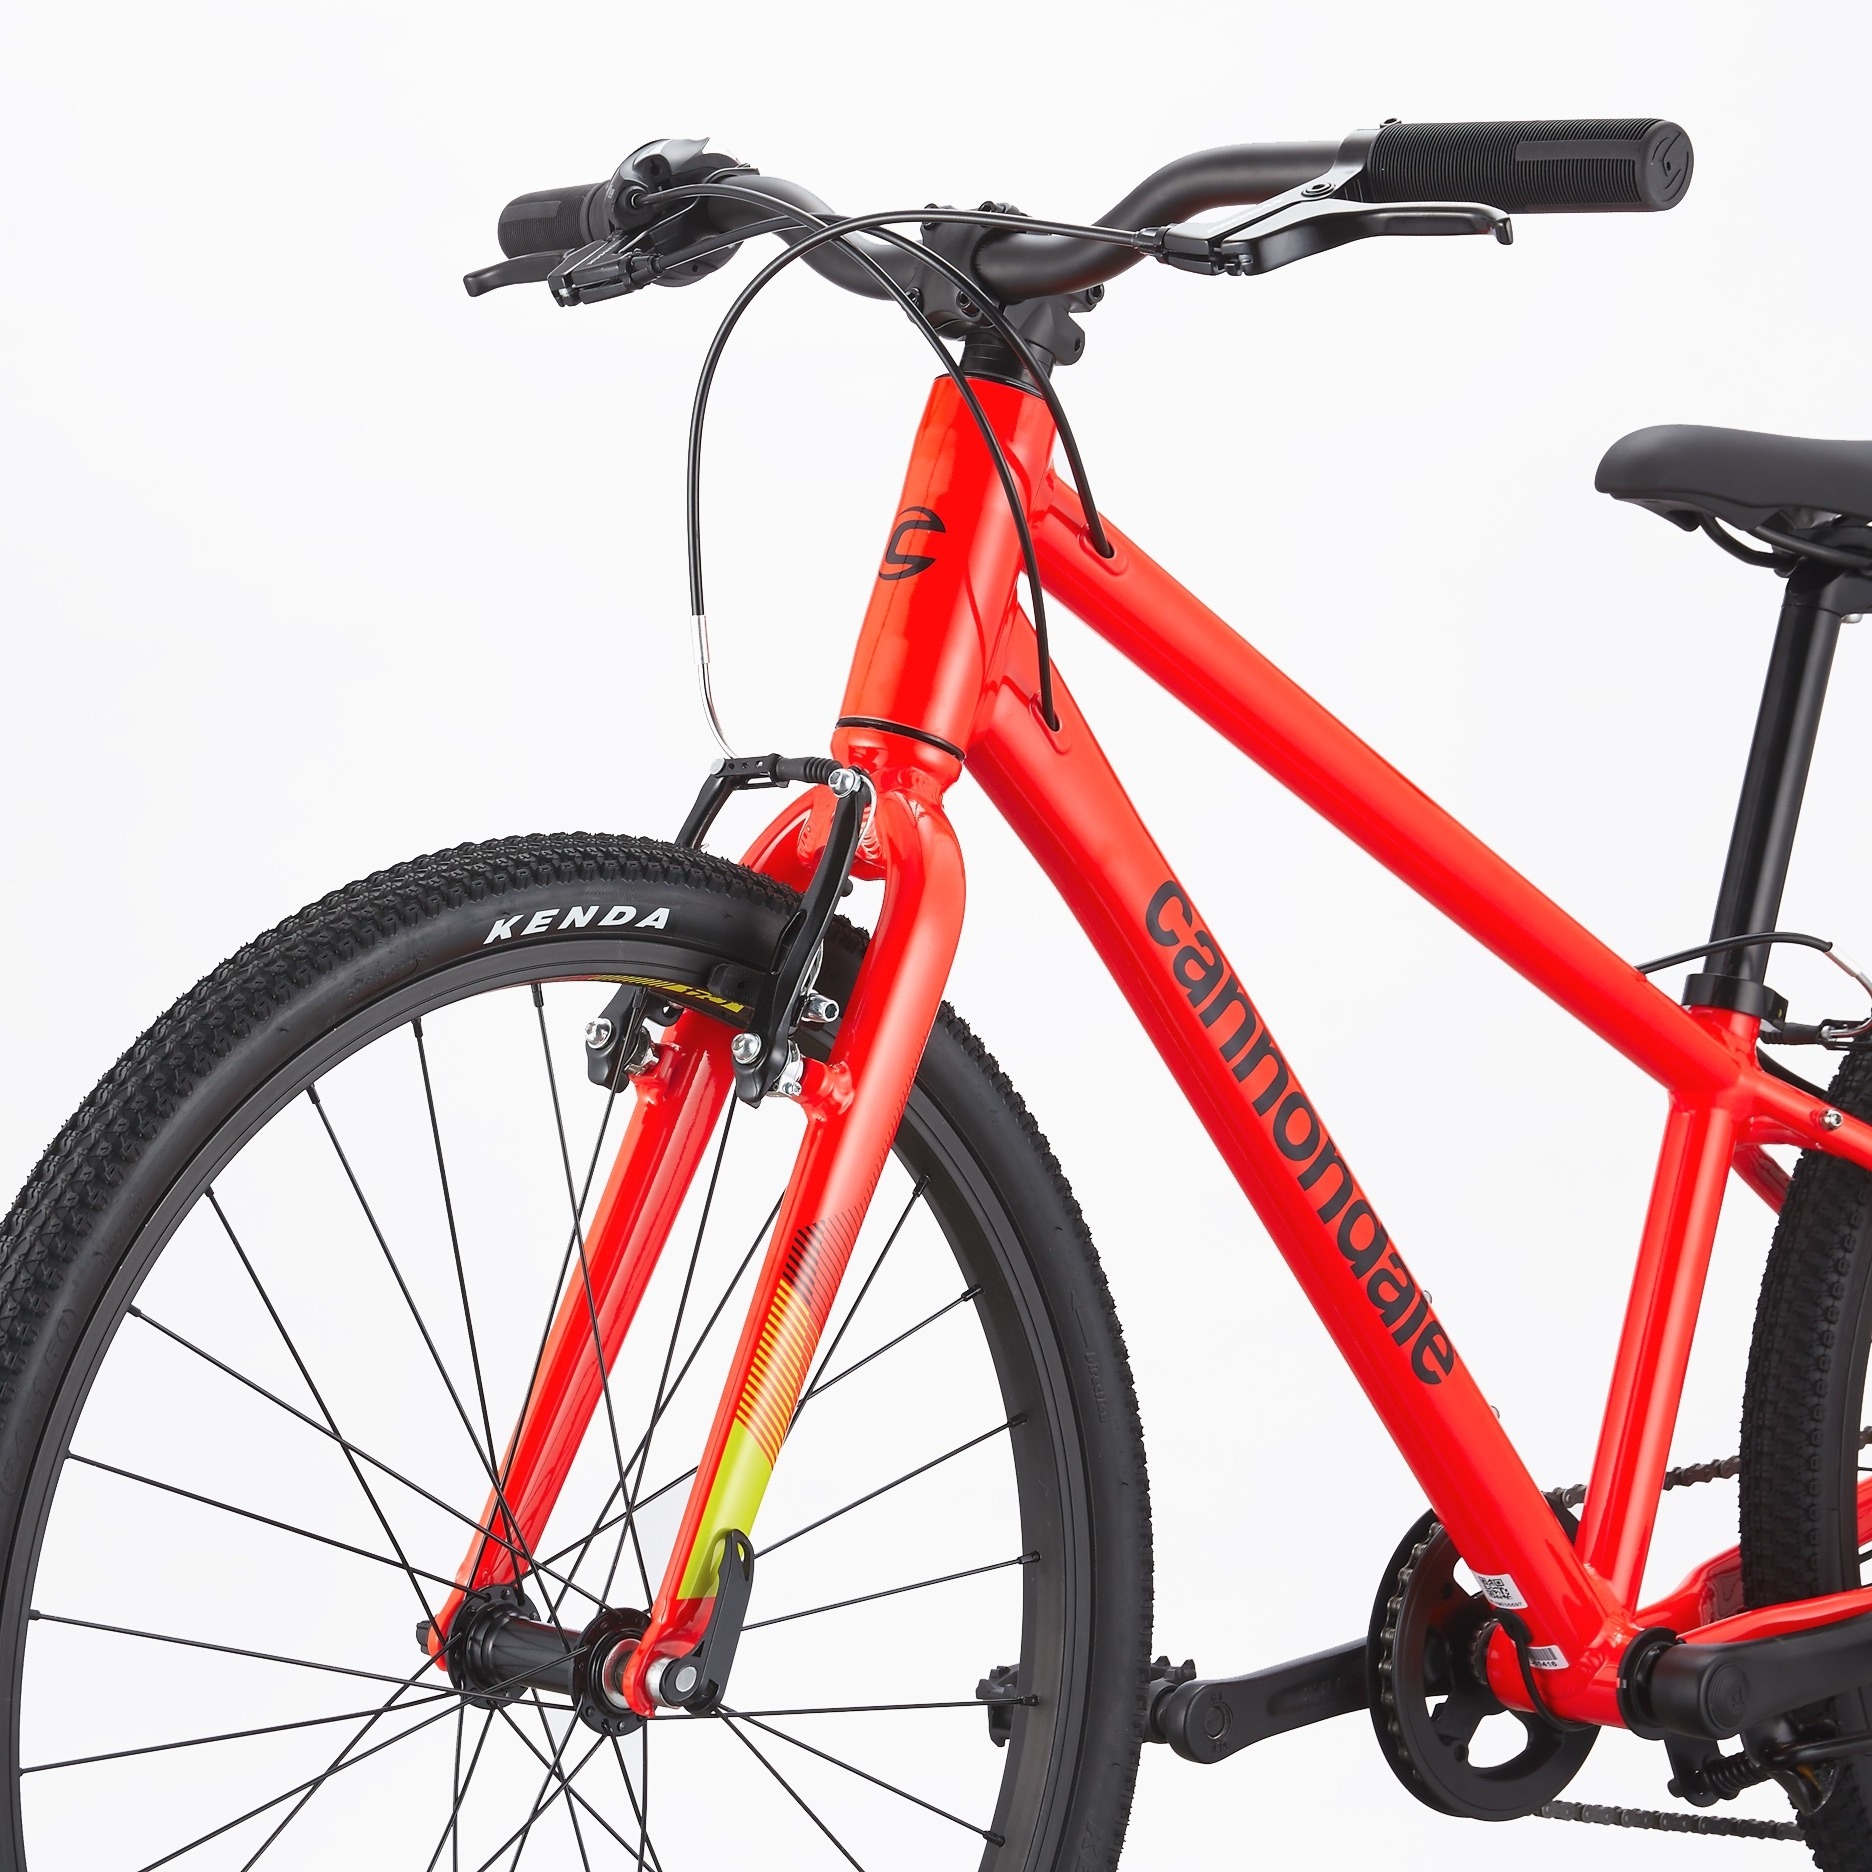 For the more sophisticated young bike rider